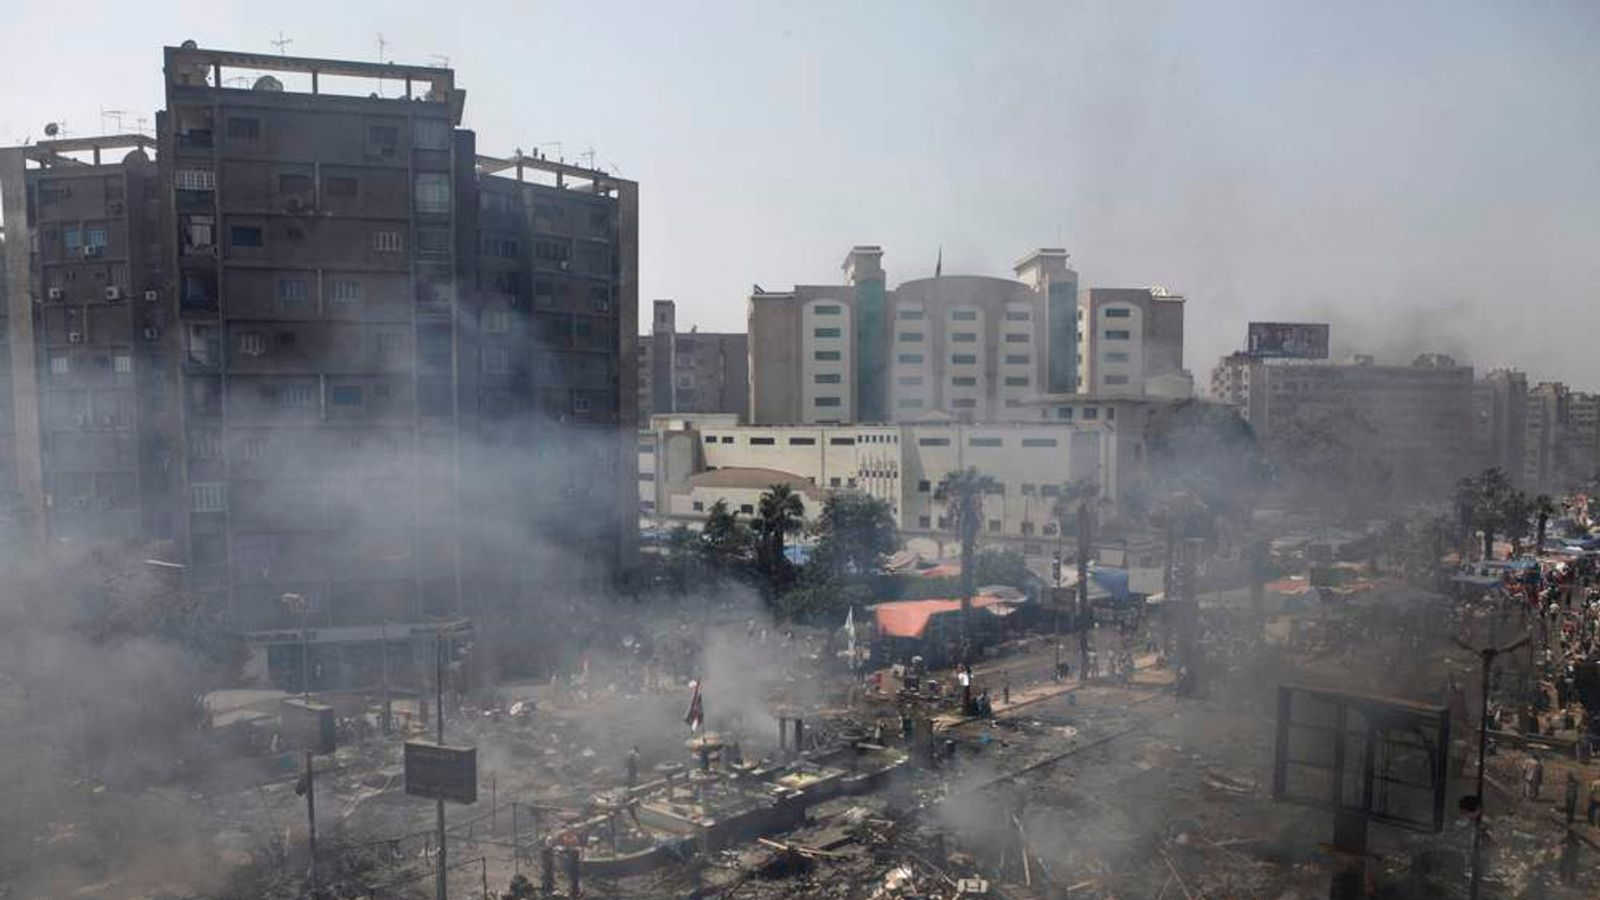 Scene After Clashes In Cairo Egypt